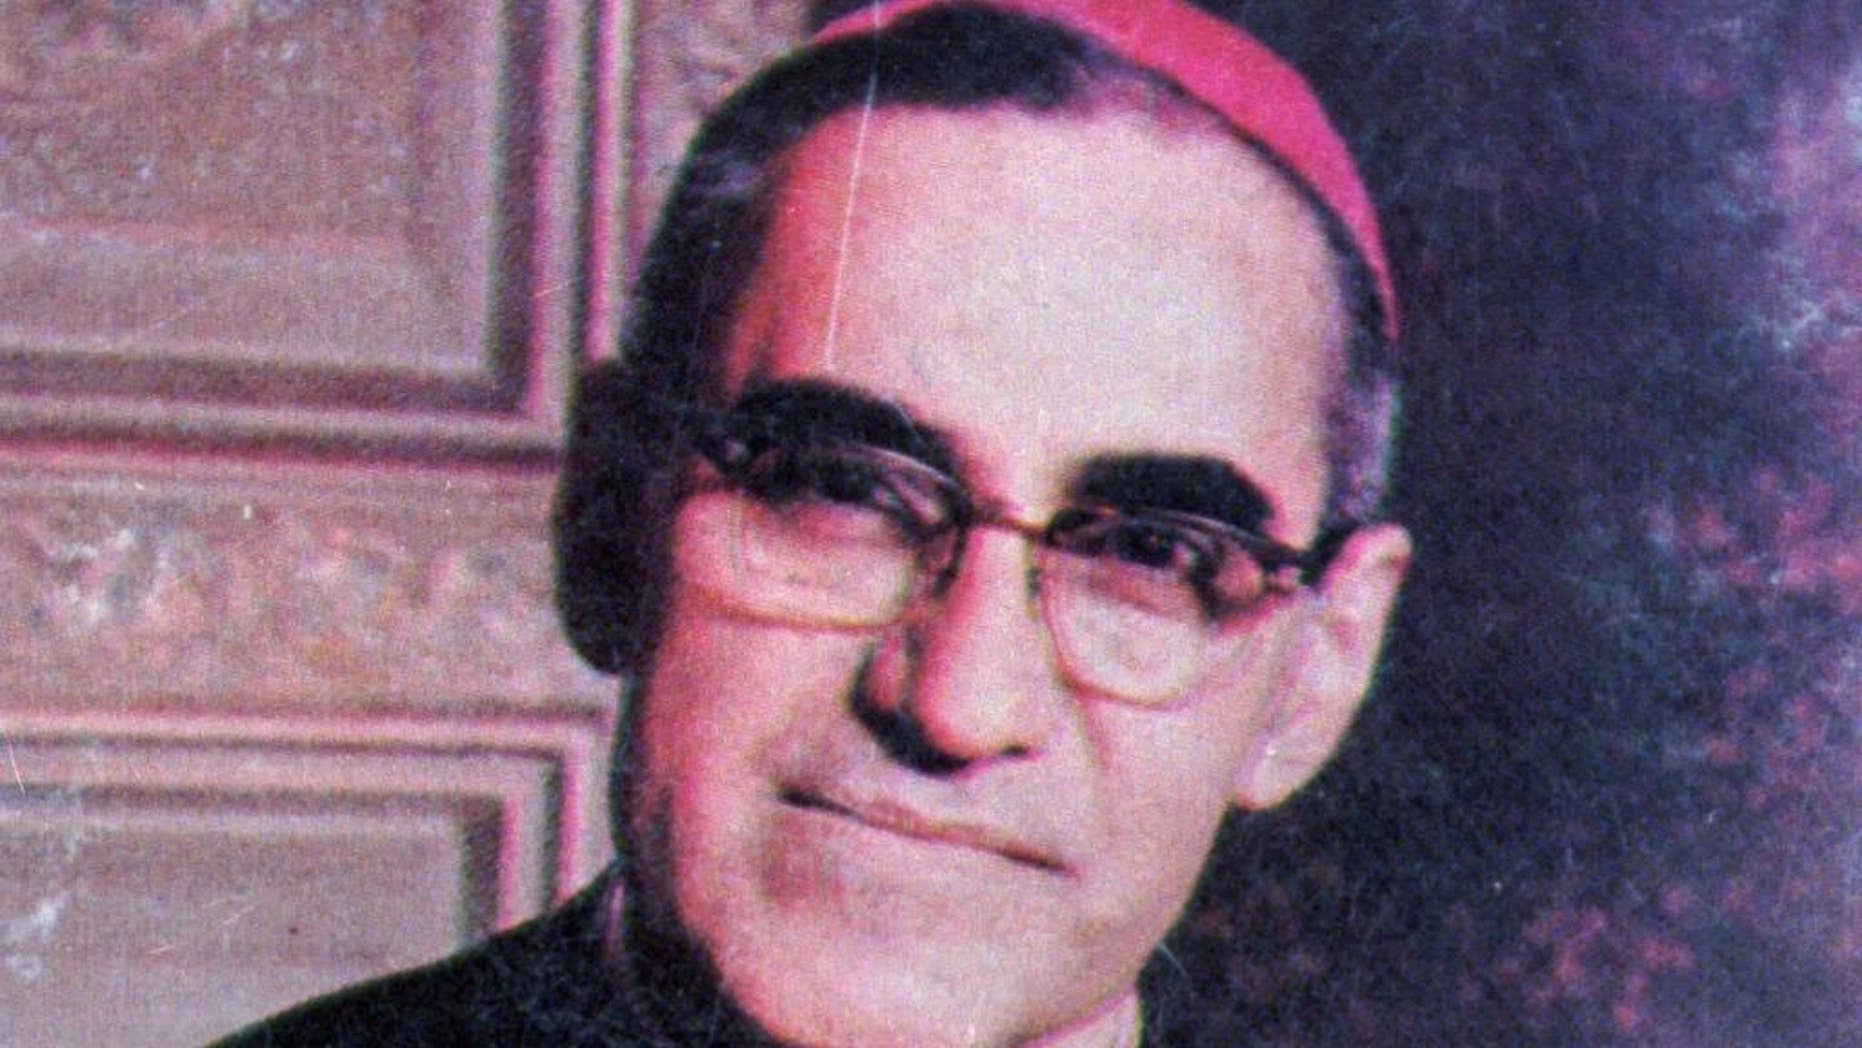 FILE - This undated file photo shows Archbishop Oscar Arnulfo Romero, who was gunned down while giving Mass in a San Salvador church on March 24, 1980. Roman Catholic authorities in El Salvador said on Sunday, March 5, 2017 that the Vatican is studying a possible miracle attributed to Romero that could lead to the once-controversial cleric's canonization. (AP Photo, File)